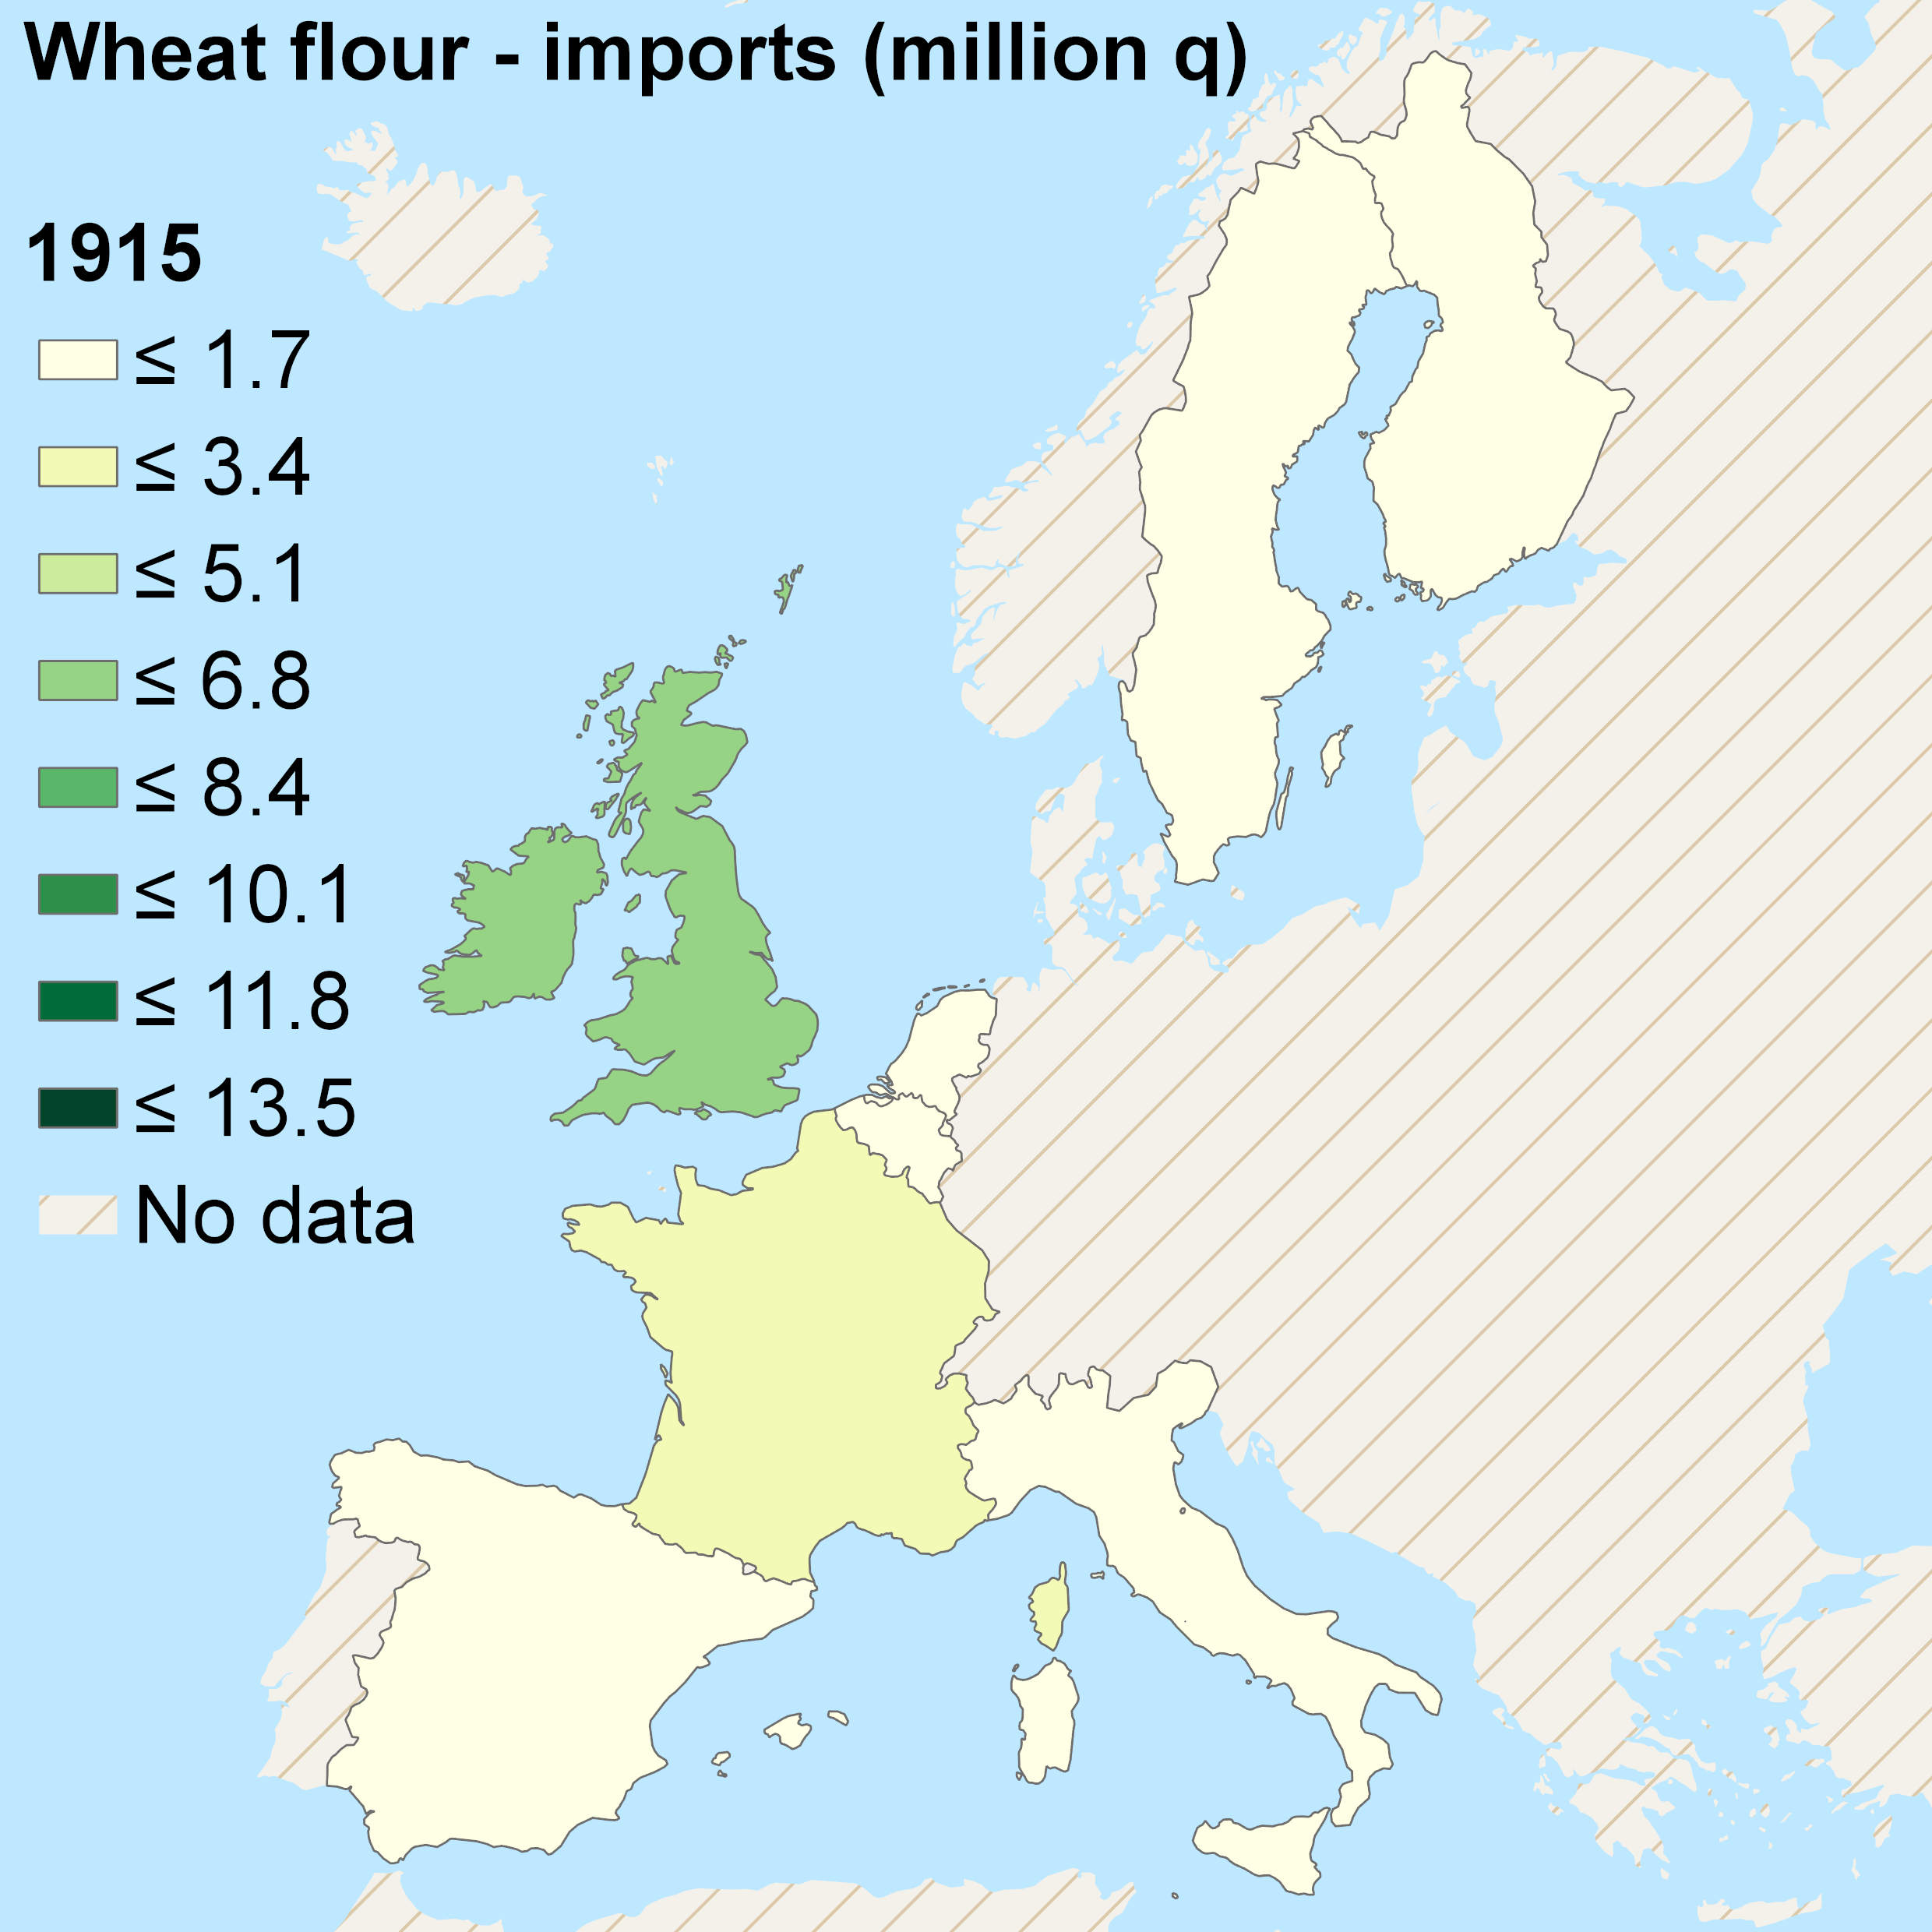 wheat-flour-imports-1915-v2